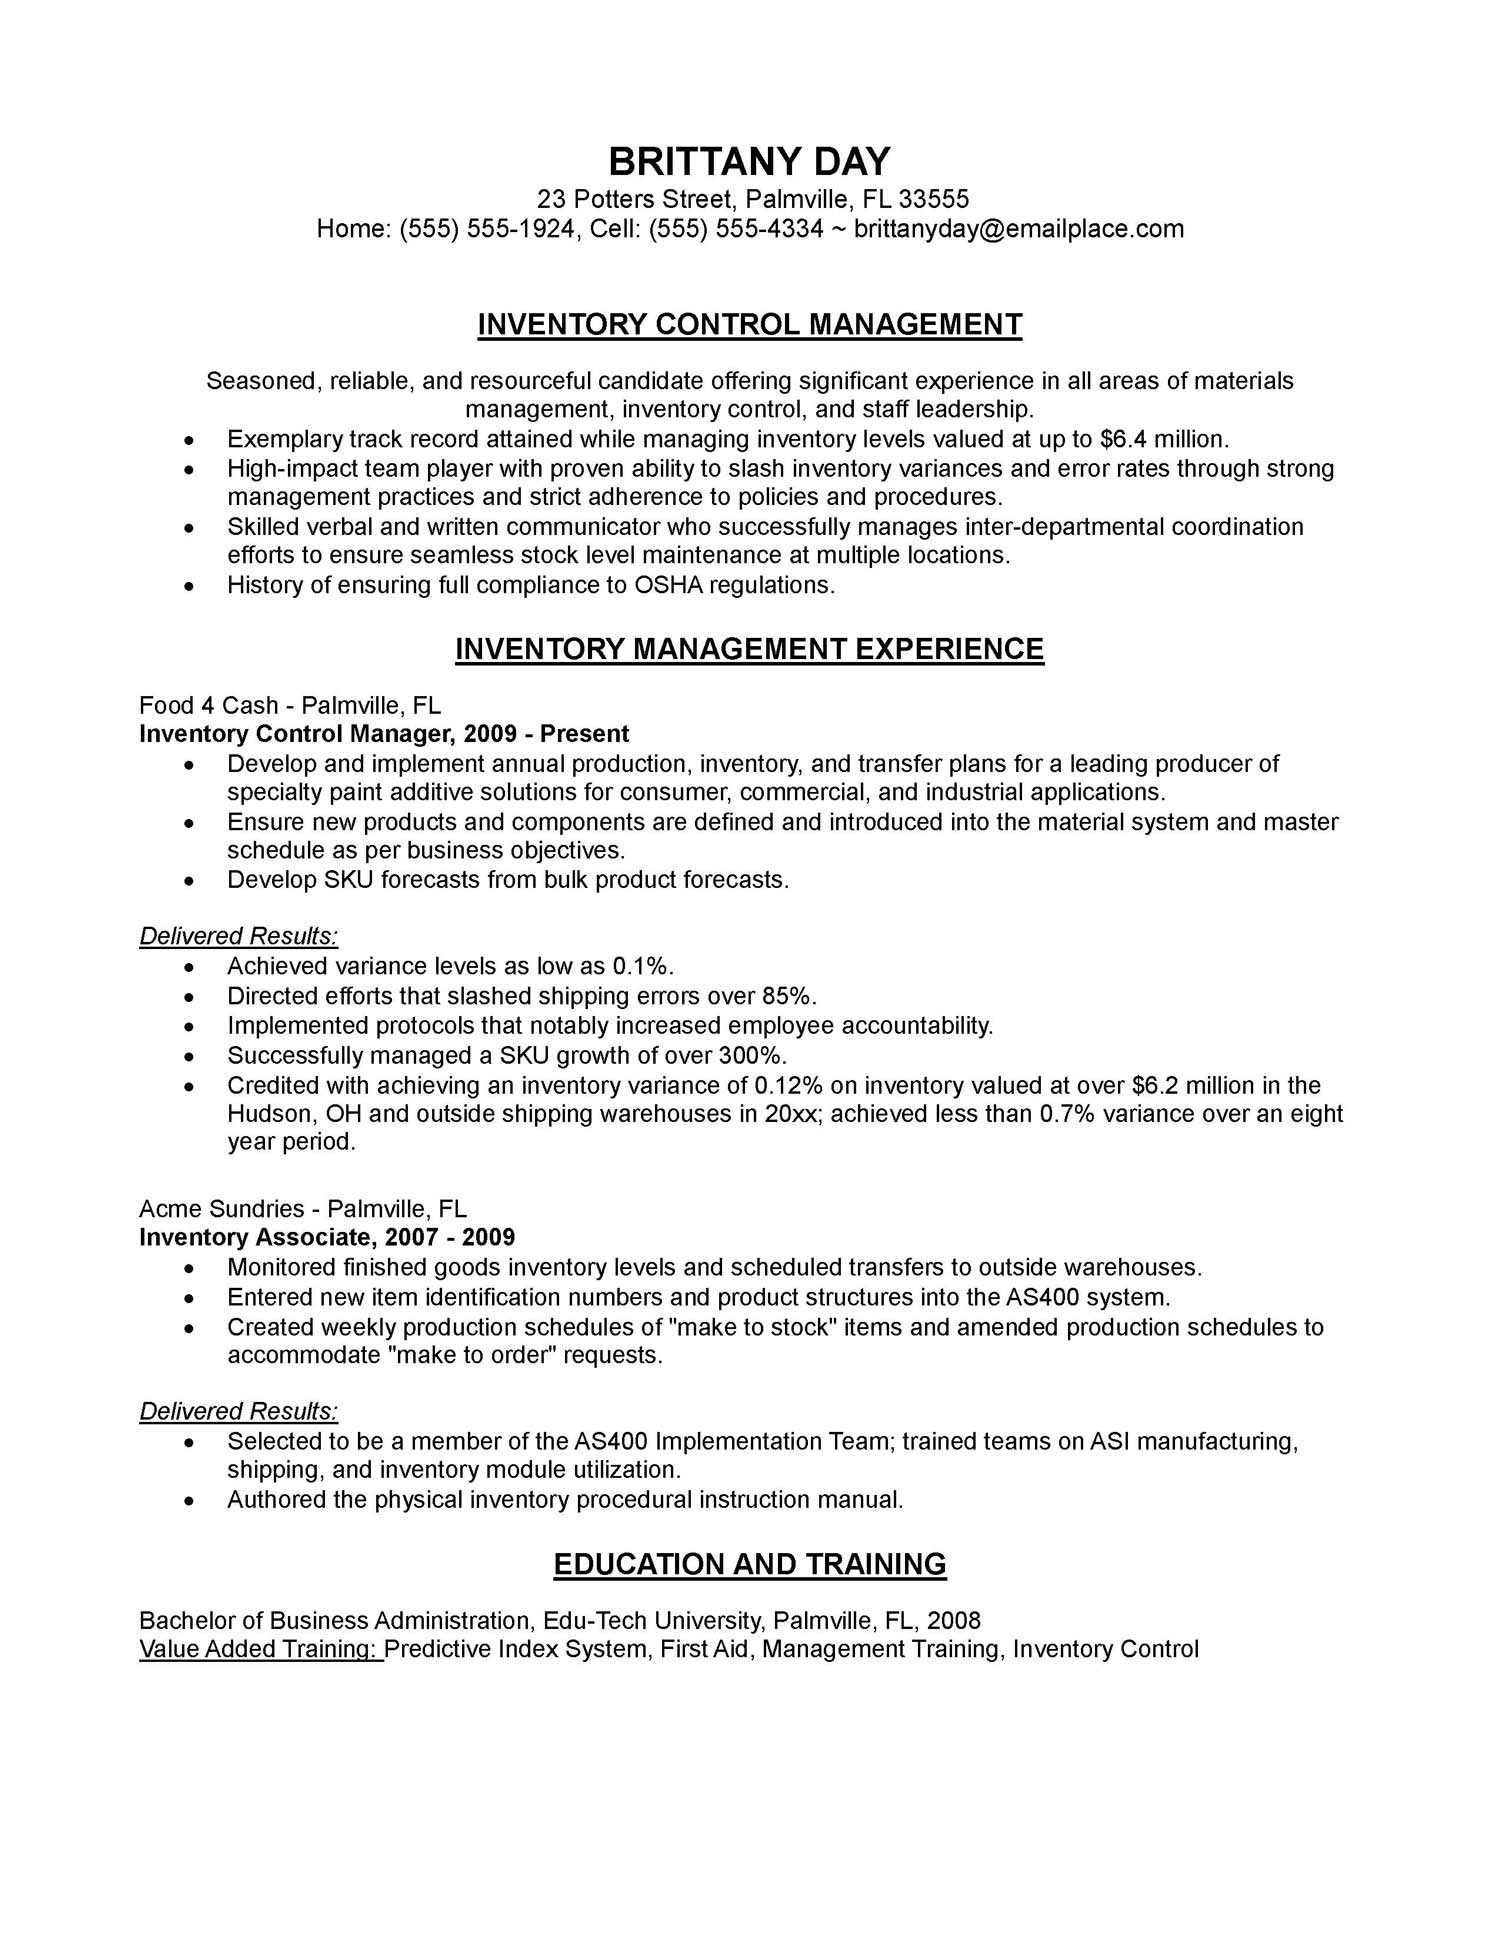 inventory control manager resume sample order management specialist work history Resume Inventory Manager Resume